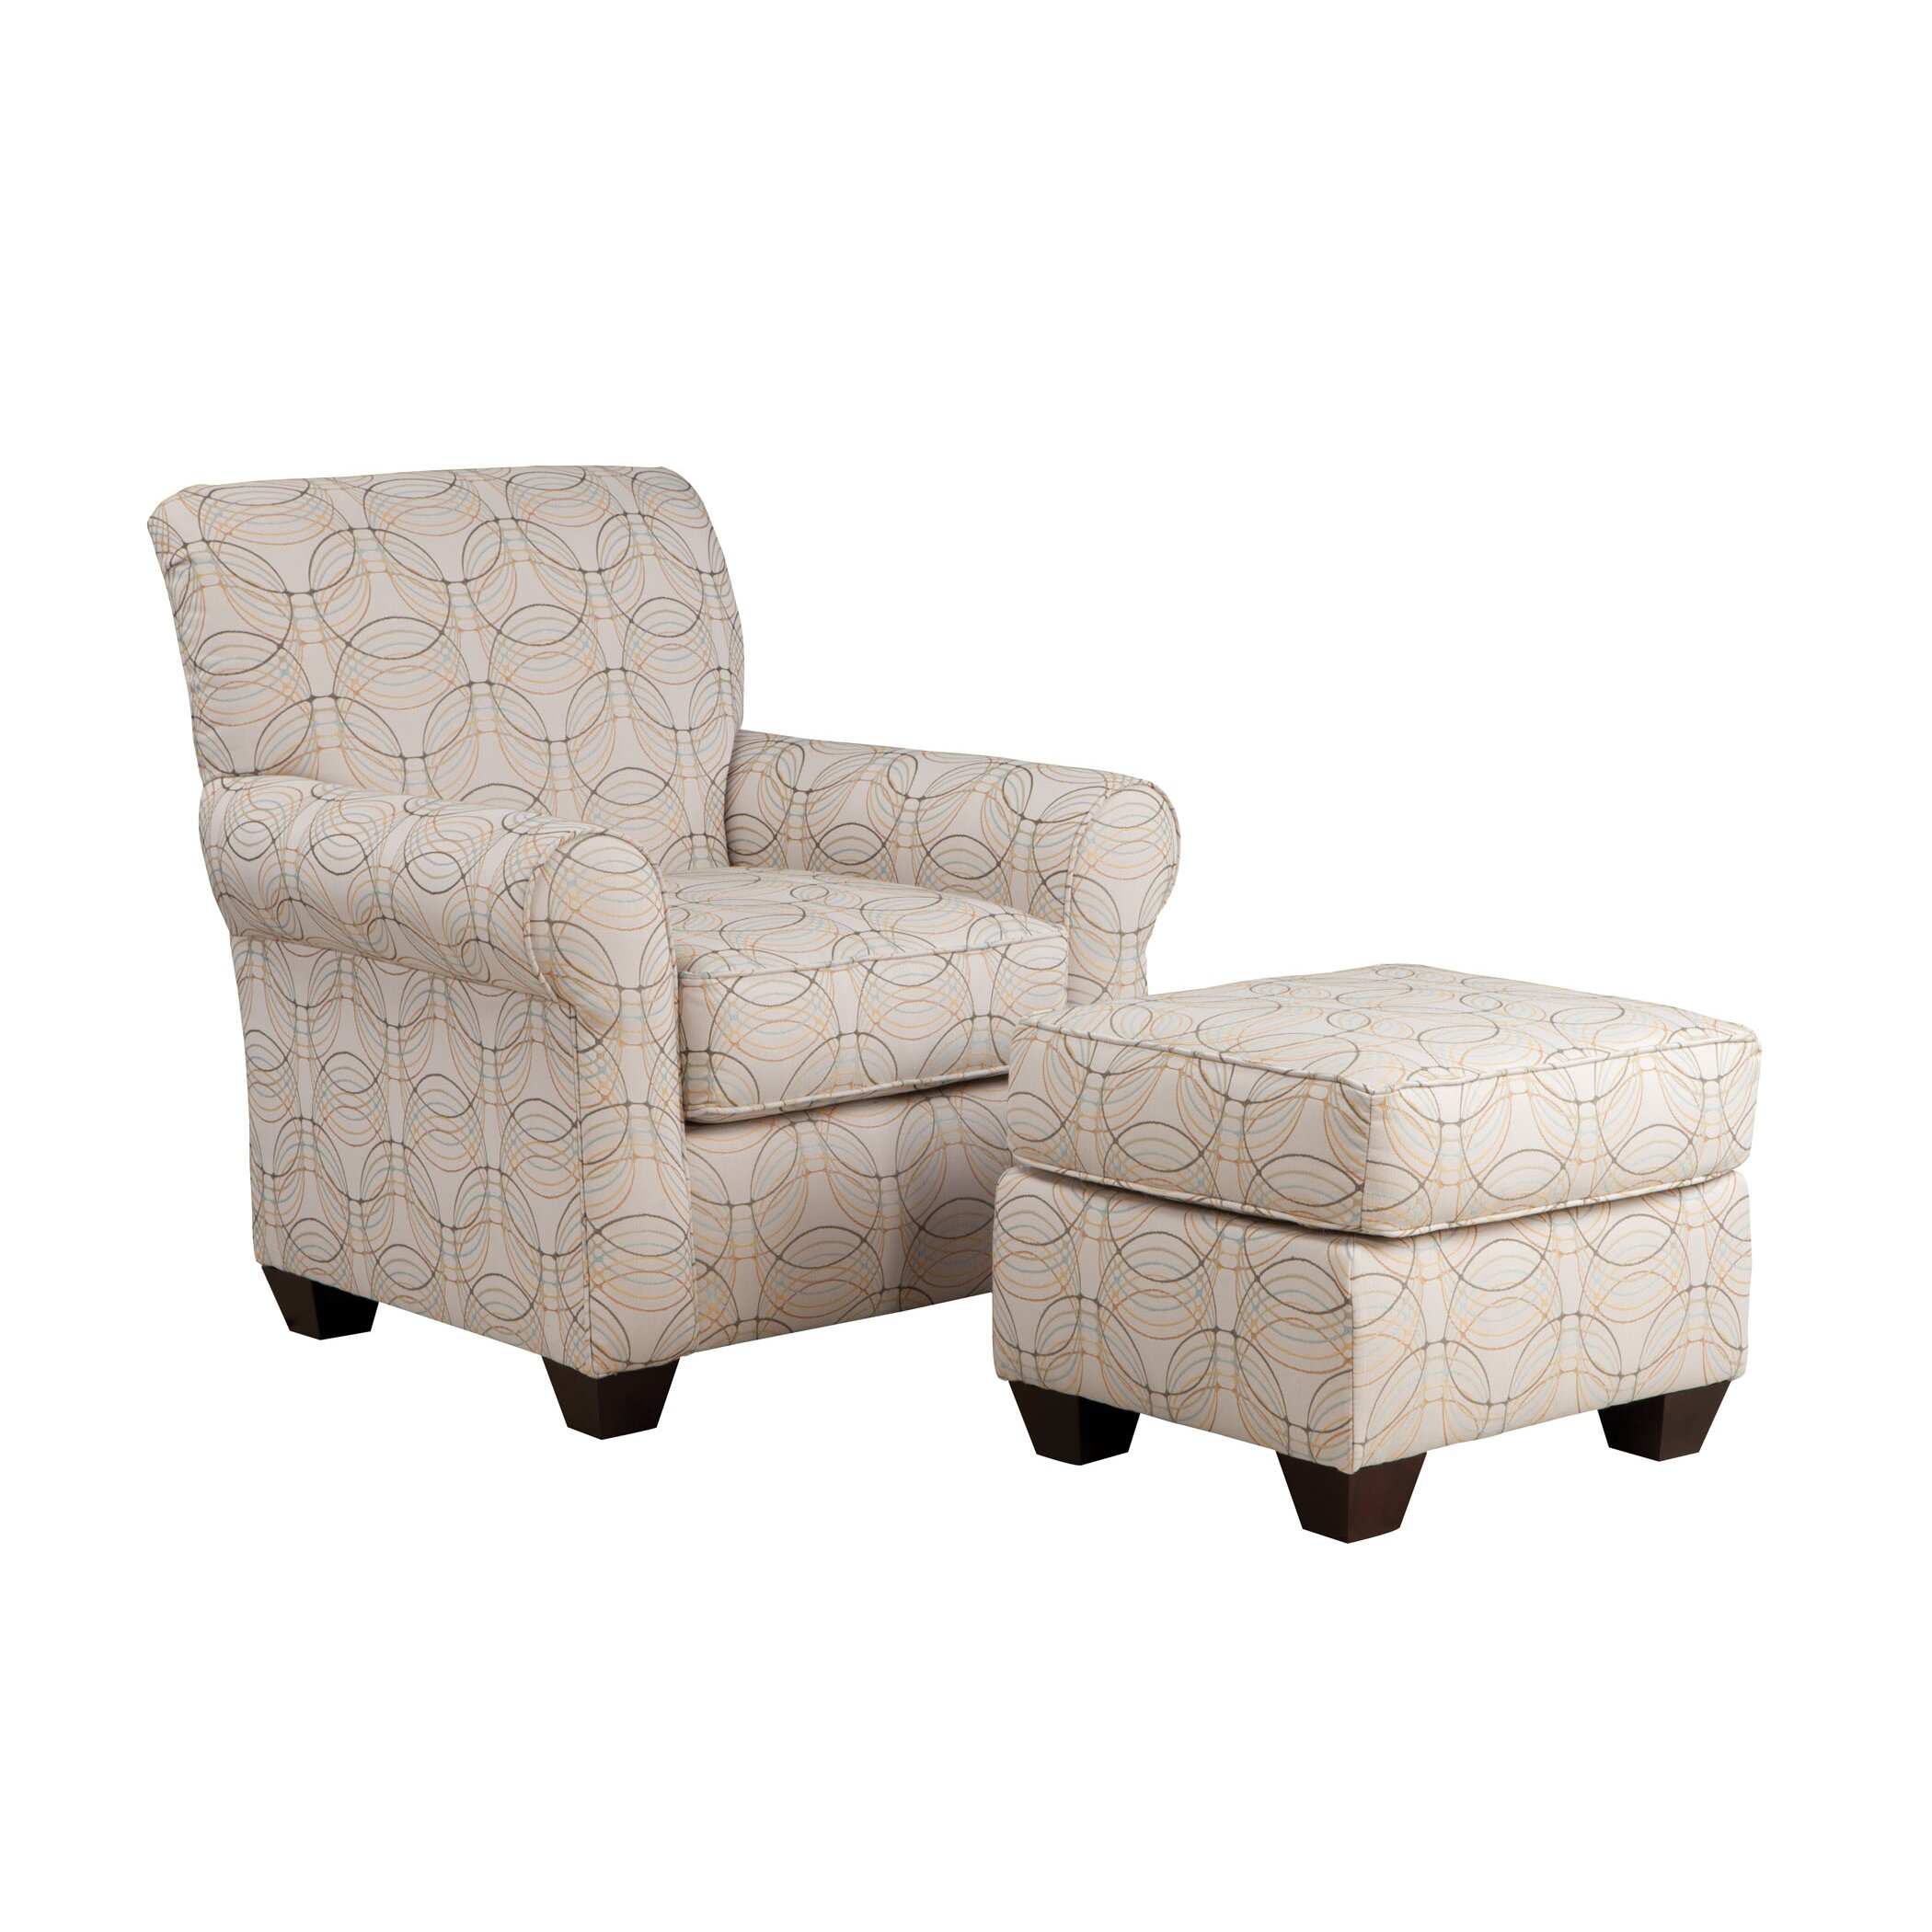 Overnight Sofa Accent Arm Chair & Reviews | Wayfair